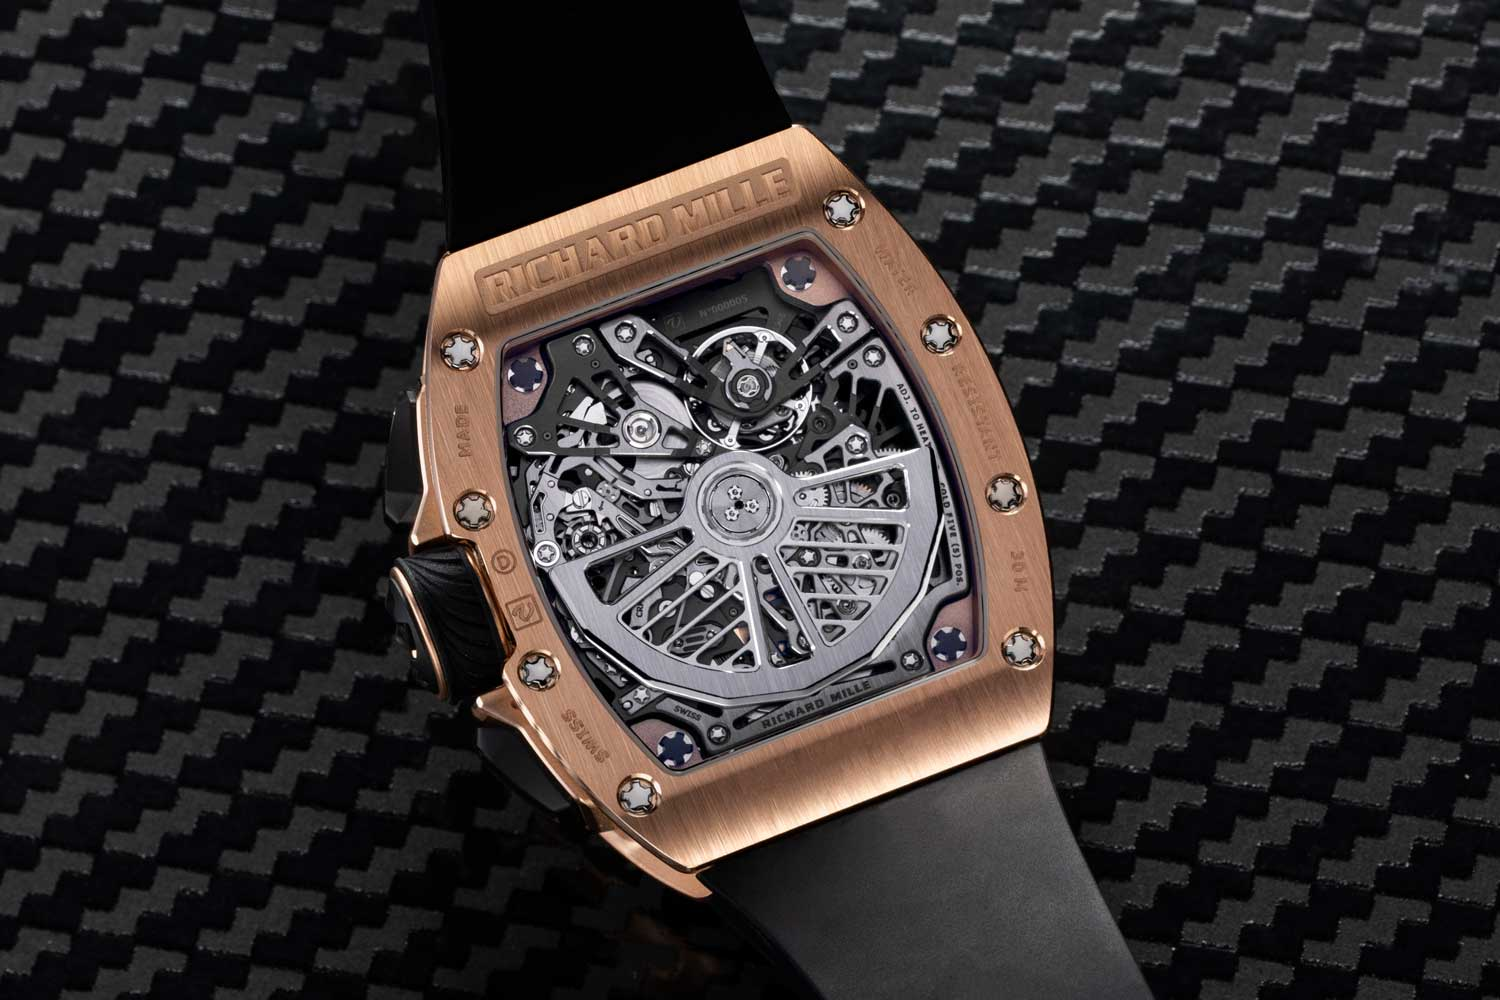 The RM 72-01 is powered by the CRMC1 movement (Caliber Richard Mille Chronograph 1), which also happens to be Richard Mille's full in-house movement and the world's first chronograph movement with two oscillating pinions (©Revolution)